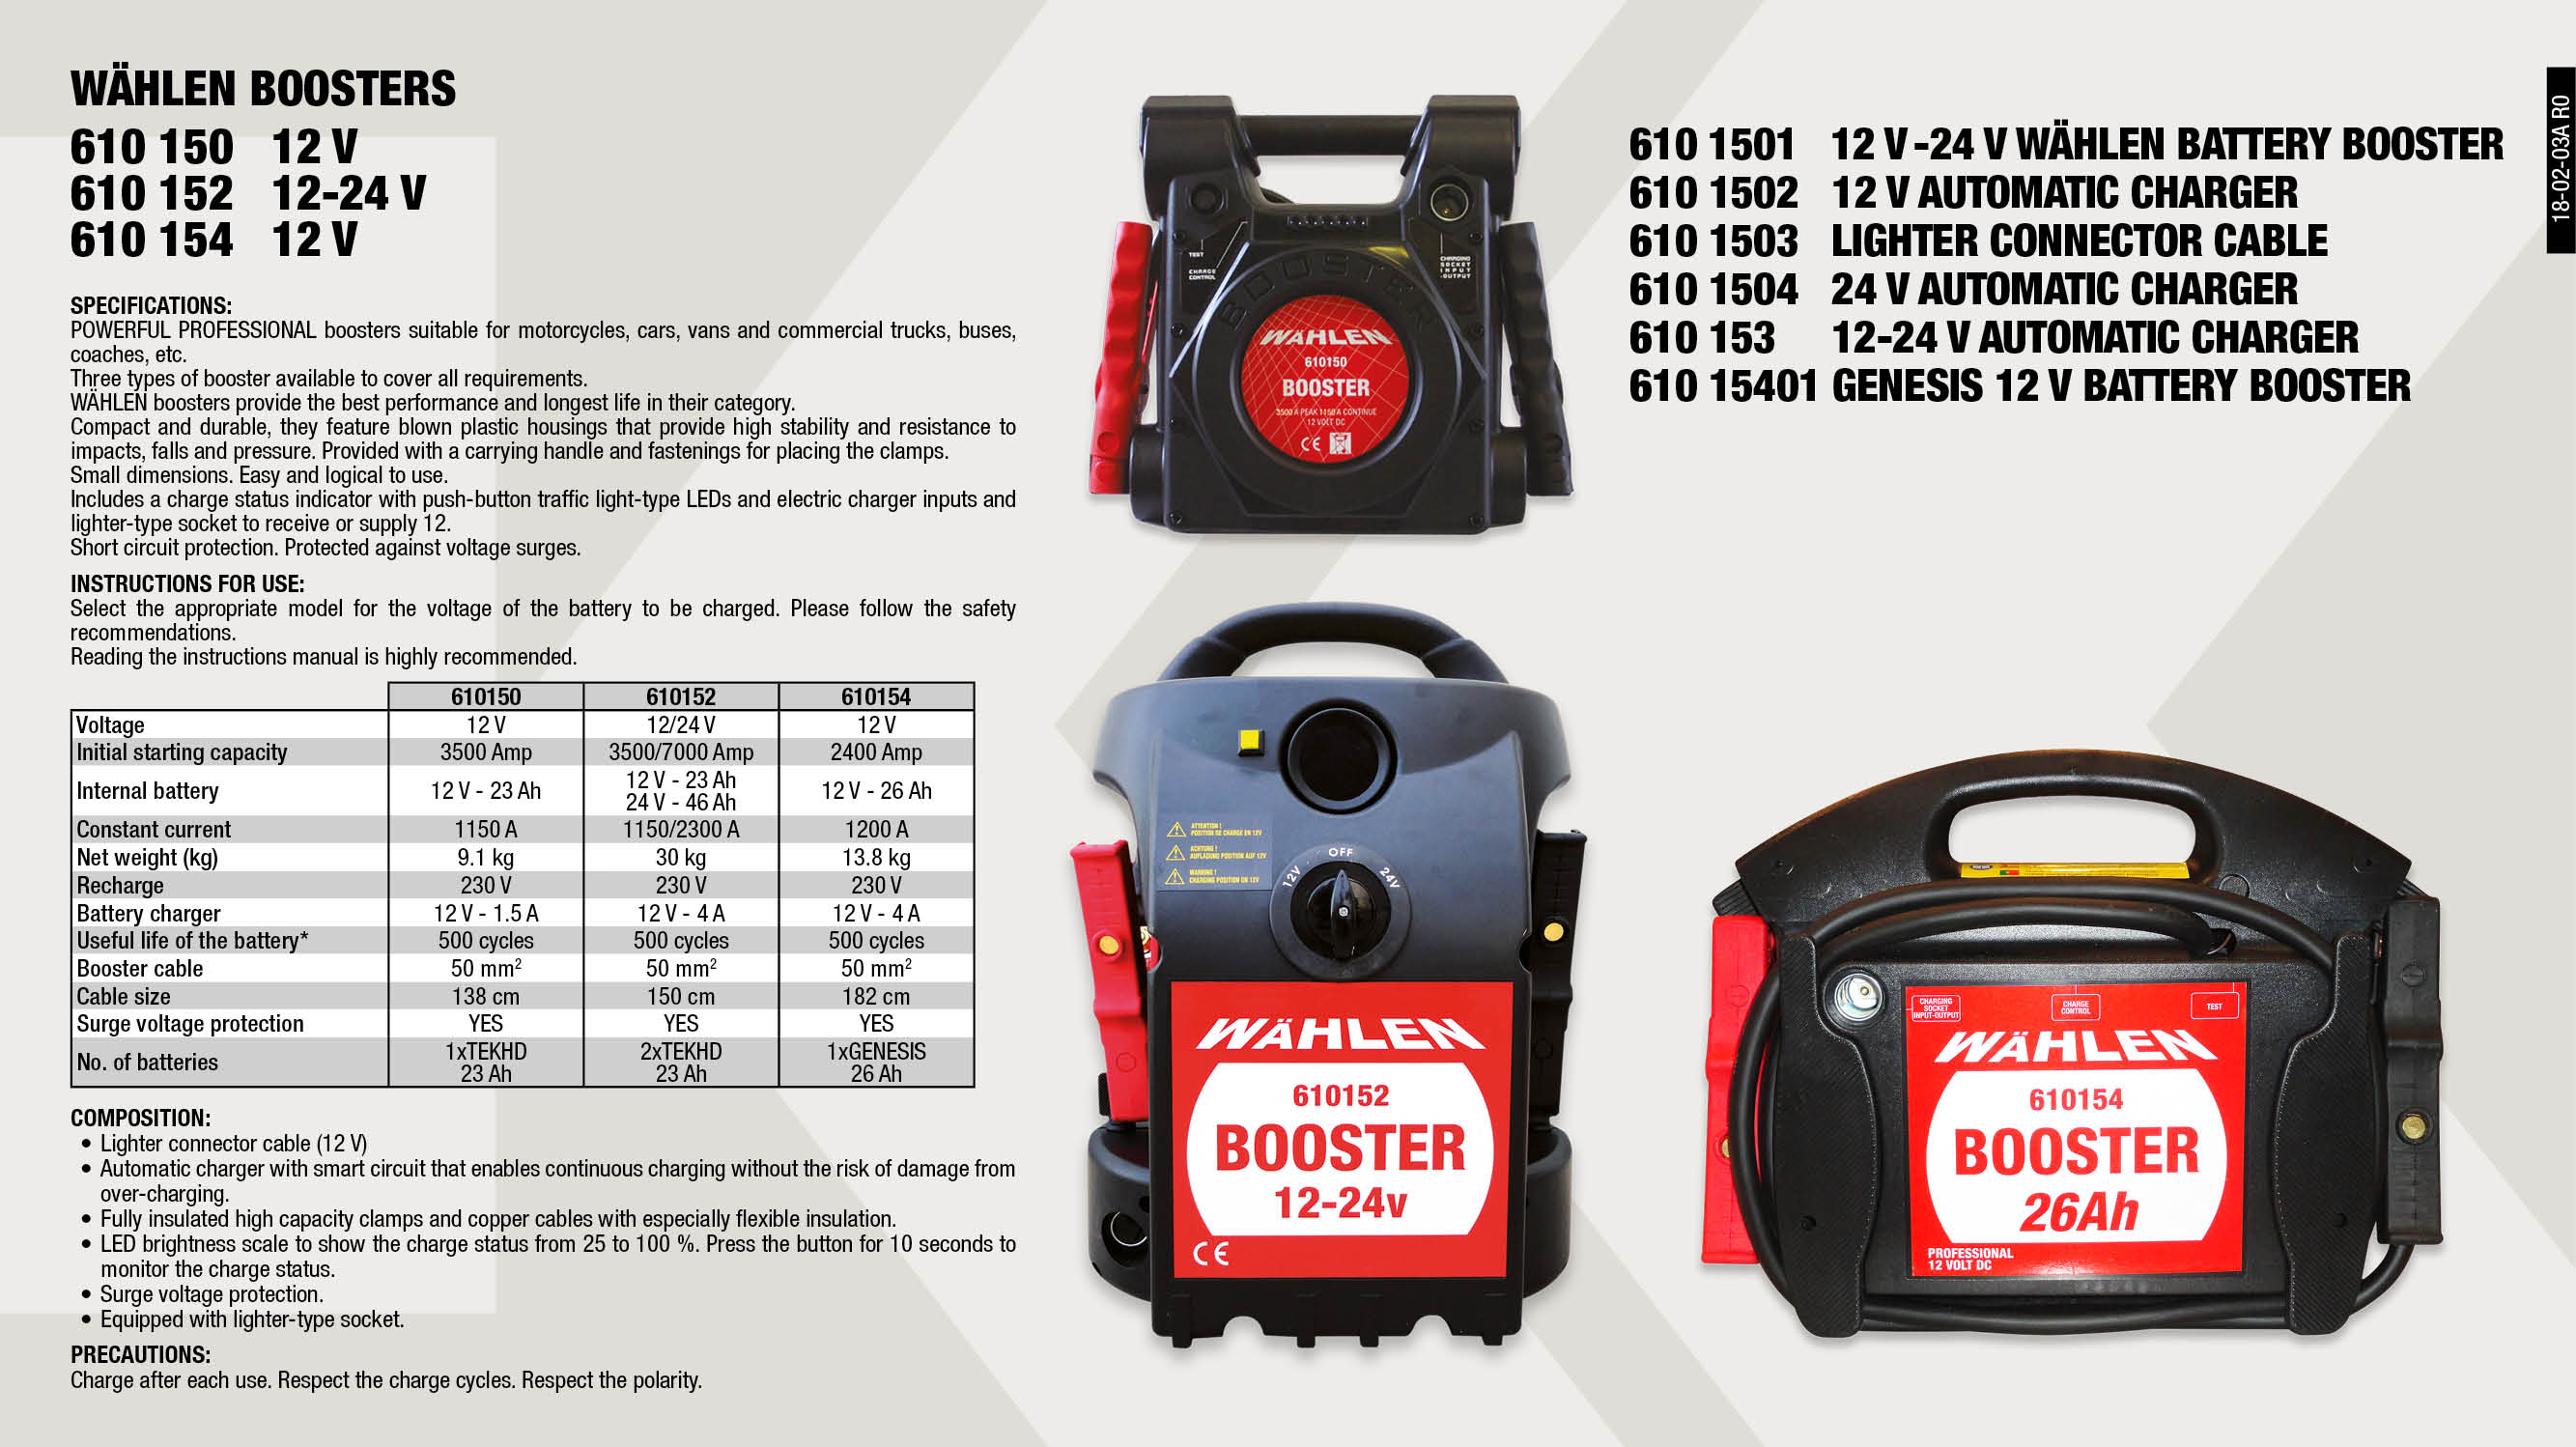 POWERFUL WÄHLEN BOOSTER 12V-2400A                           ,  WÄHLEN BOOSTER 12-24V                                       ,  AUTOMATIC CHARGER 12-24V                                    ,  GENESIS 12 V 2400A BATTERY BOOSTER                          ,  BATTERY BOOSTER WÄHLEN 12V-24V                              ,  12V AUTOMATIC CHARGER FORWÄHLEN BOOSTERS                   ,  BOOSTER CABLE CIGARETTE LIGHTER                             ,  24V AUTOMATIC CHARGER                                       ,  WÄHLEN BOOSTER 12V                                          ,